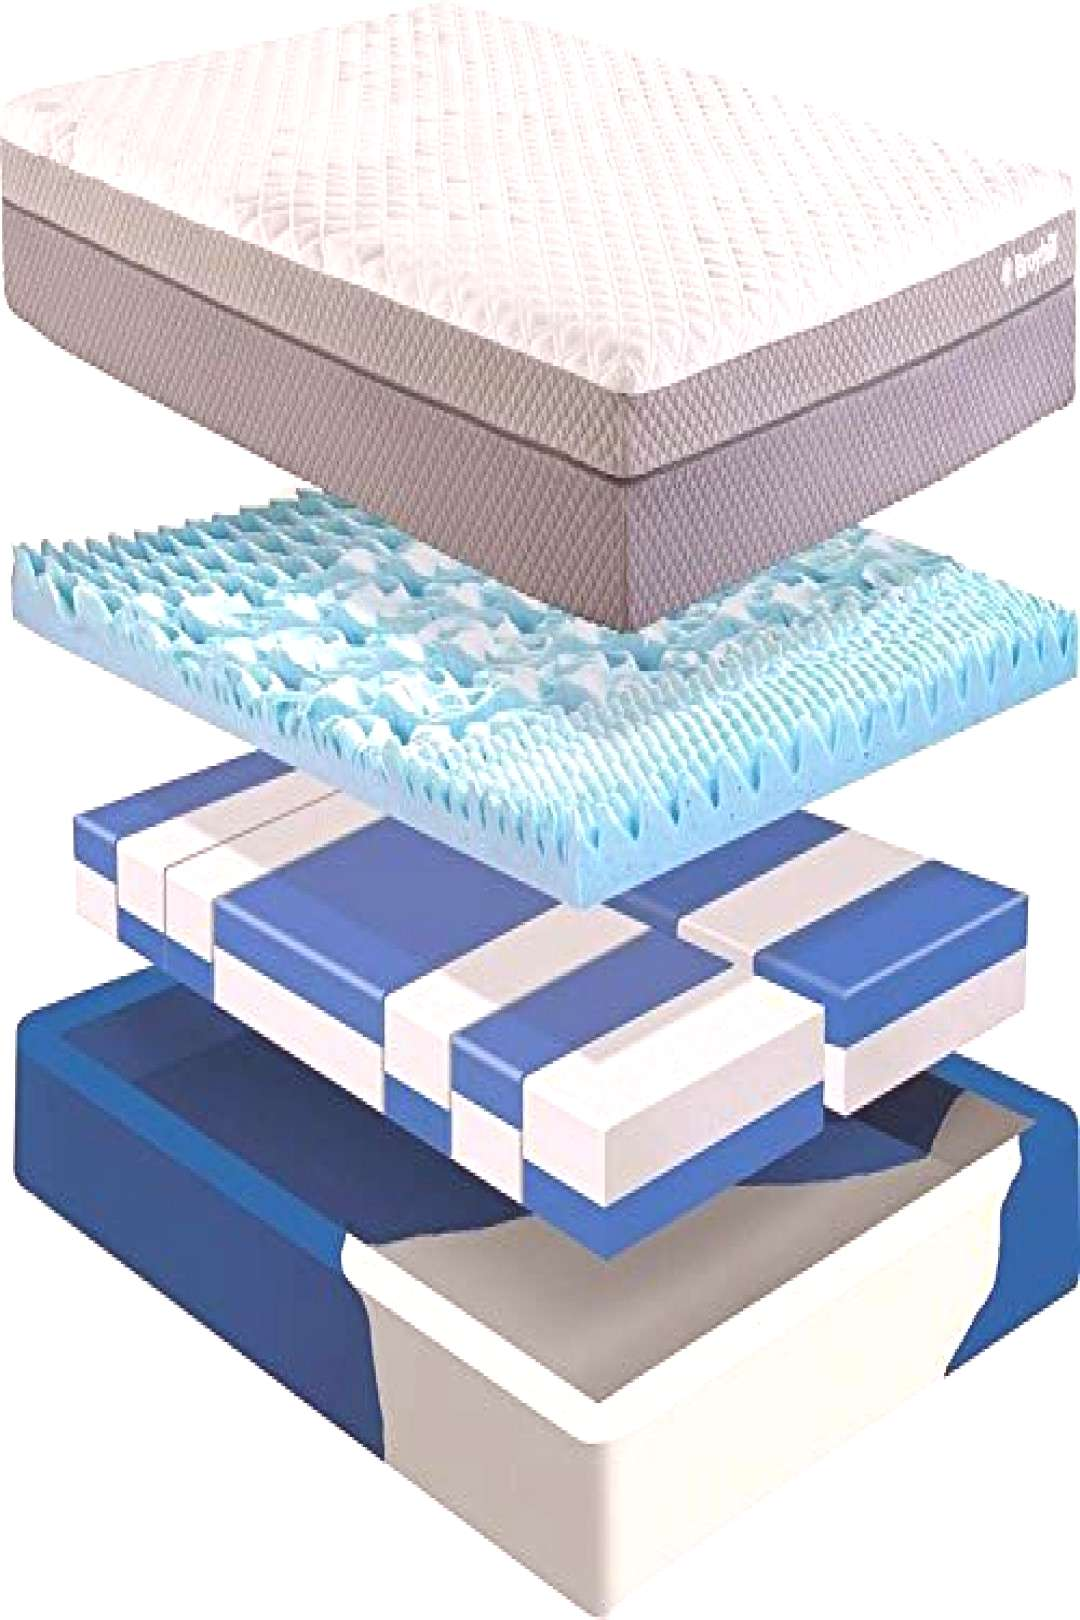 Buy Adjustable Memory Foam Cube Mattress Contouring Gel-Infused Cooling Topper, Customize Your Bed